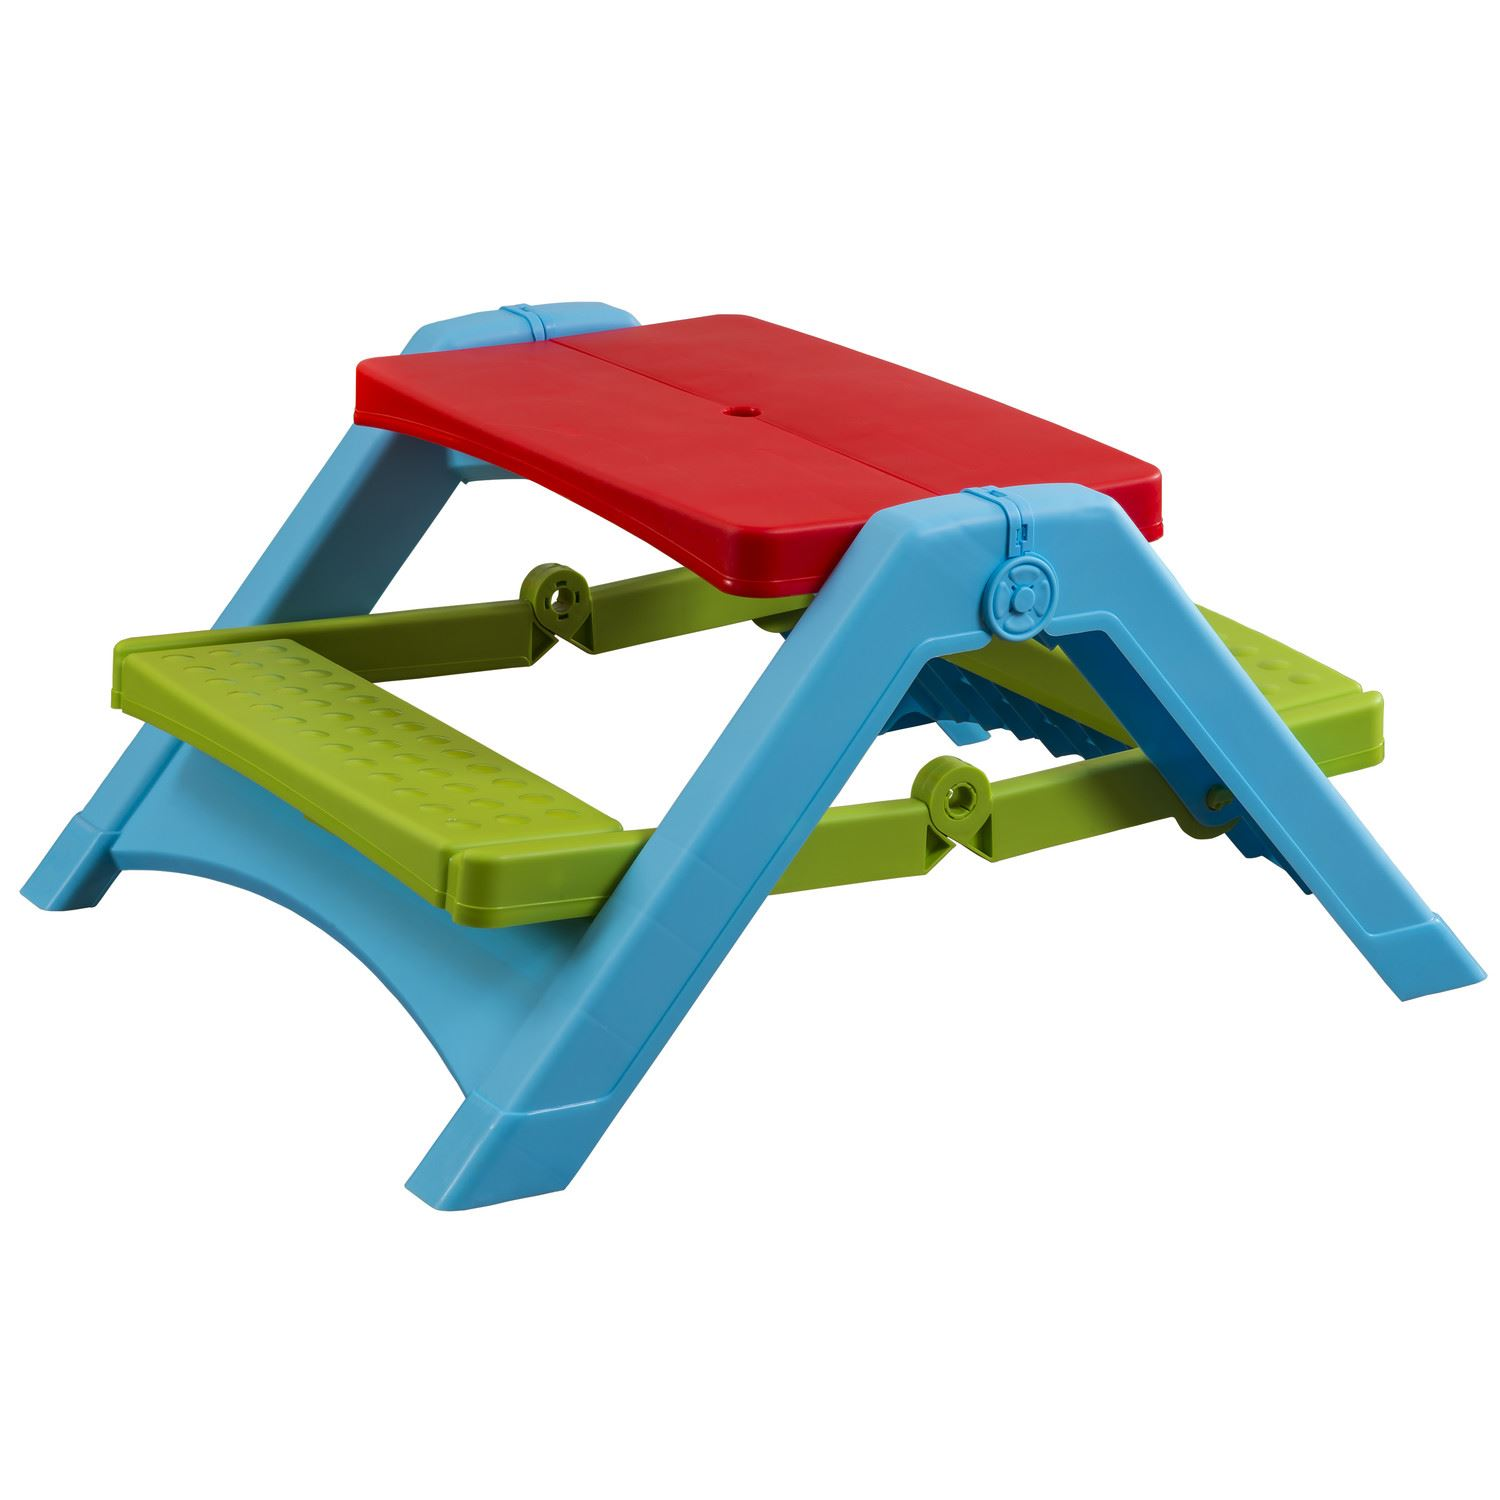 Kids Outdoor Table And Chairs Kids Picnic Camping Outdoor Bench Garden Furniture Indoor